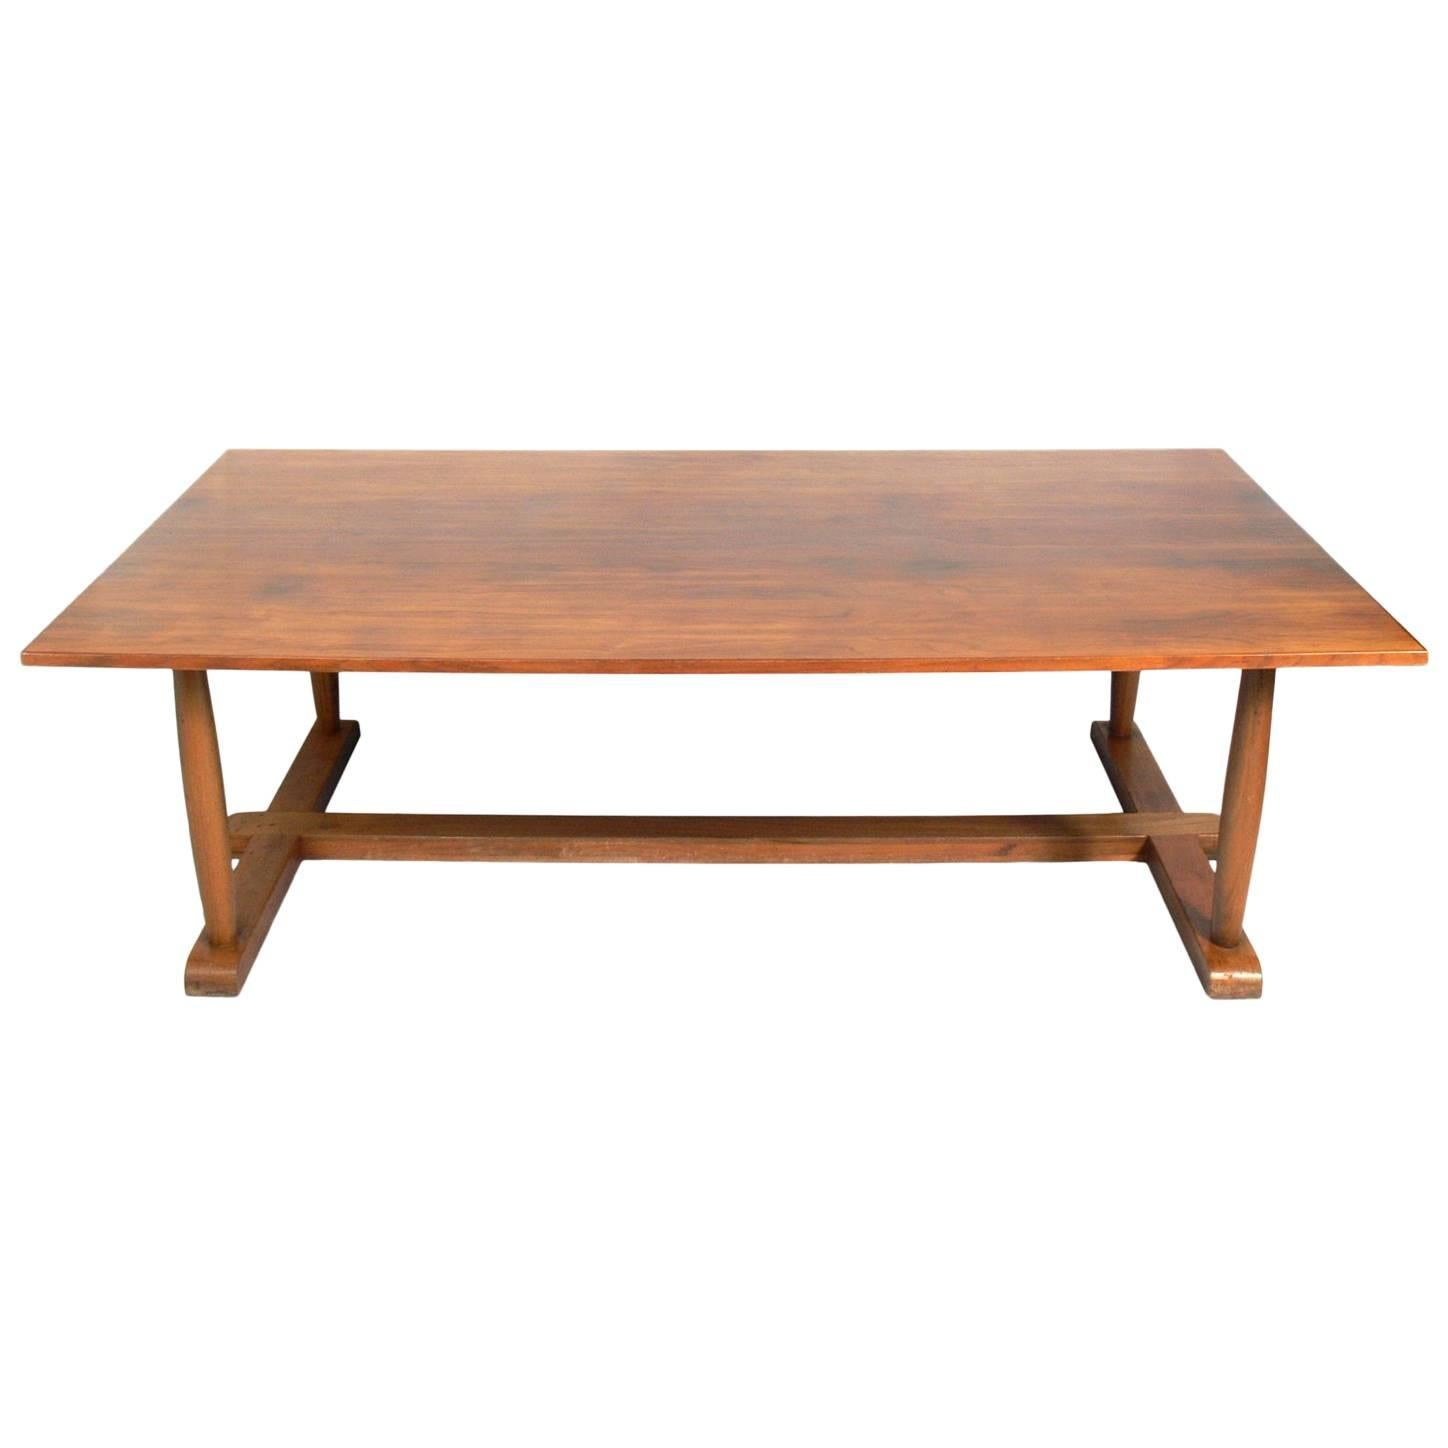 Large-Scale Neoclassical Dining Table